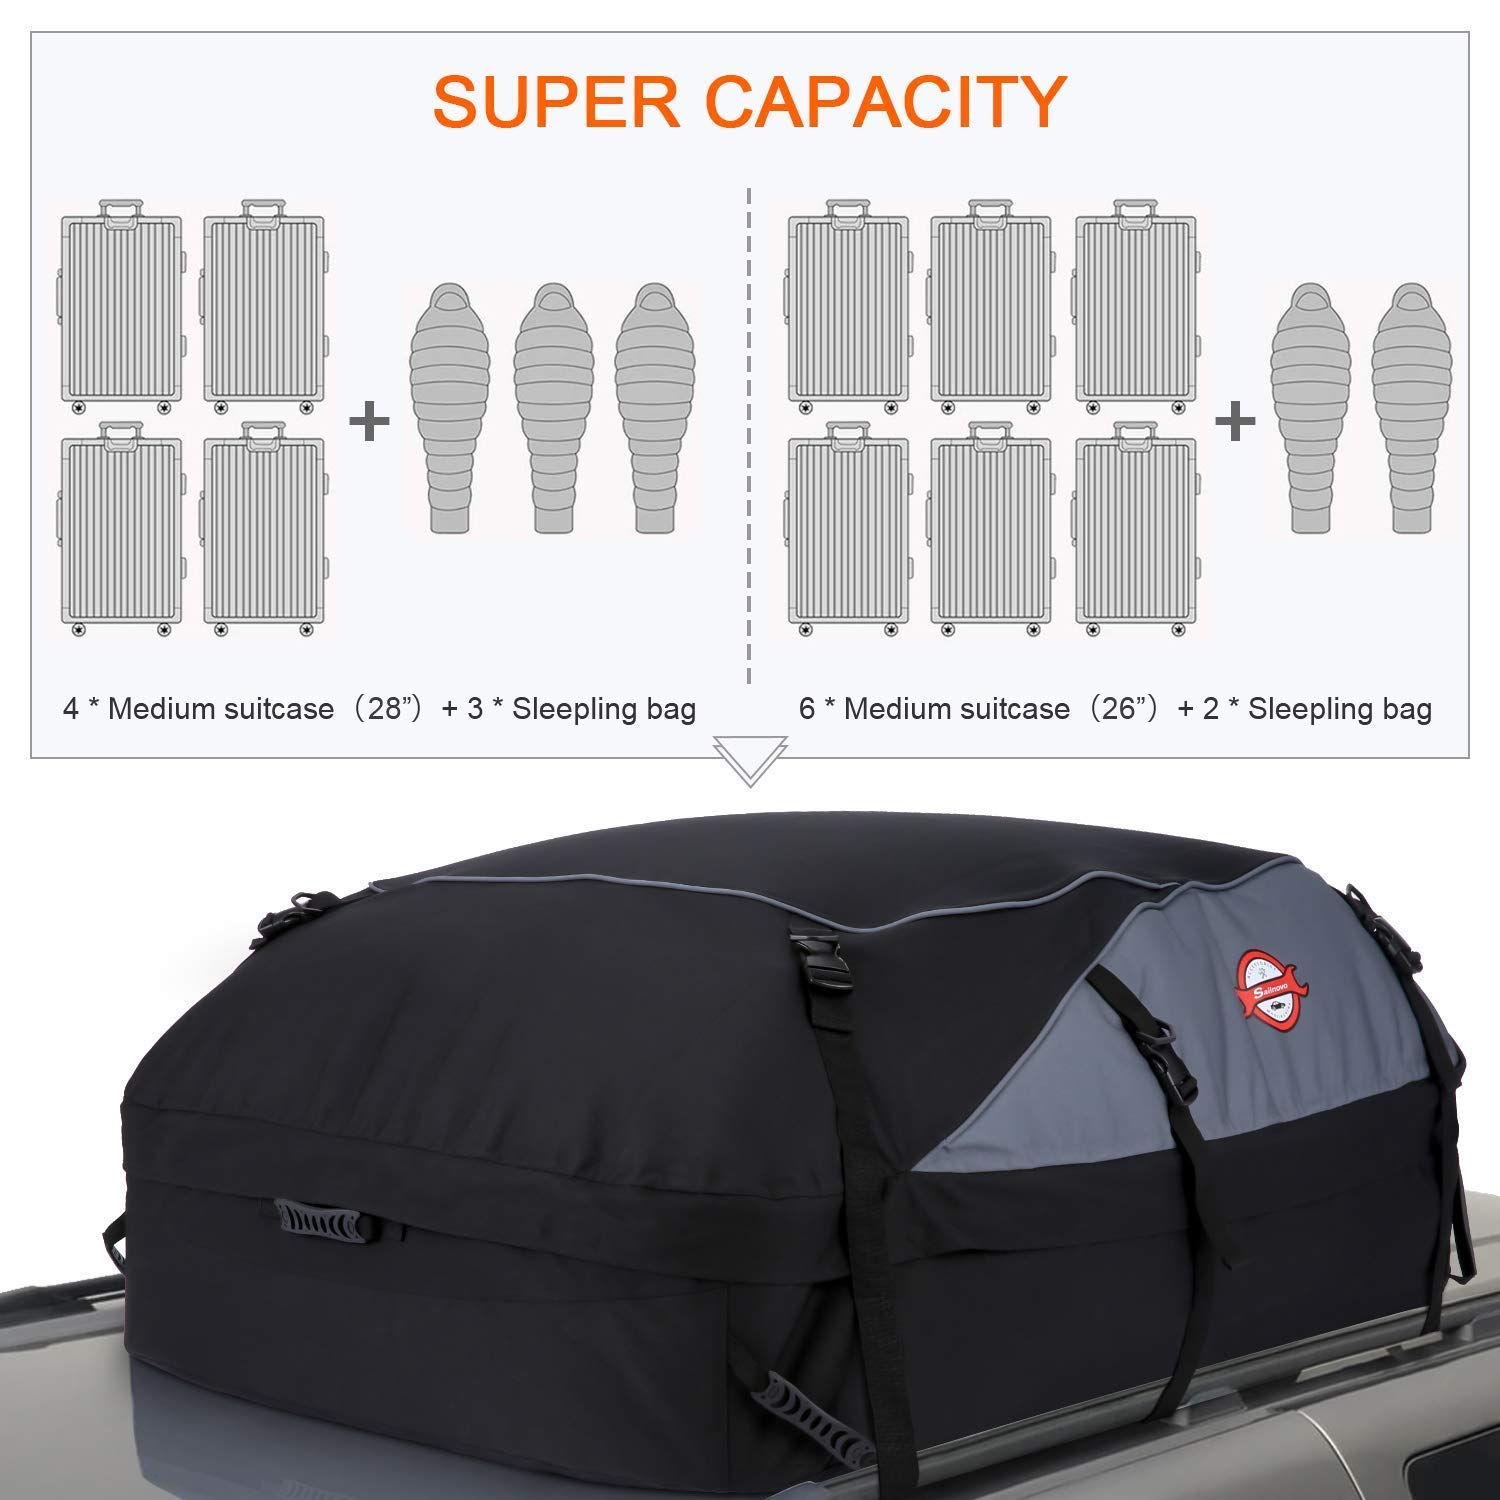 US Stock cosway 20.7 Cubic Feet Waterproof Car Vehicles Roof Top Cargo Carrier Easy to Install Luggage Travel Storage Bag